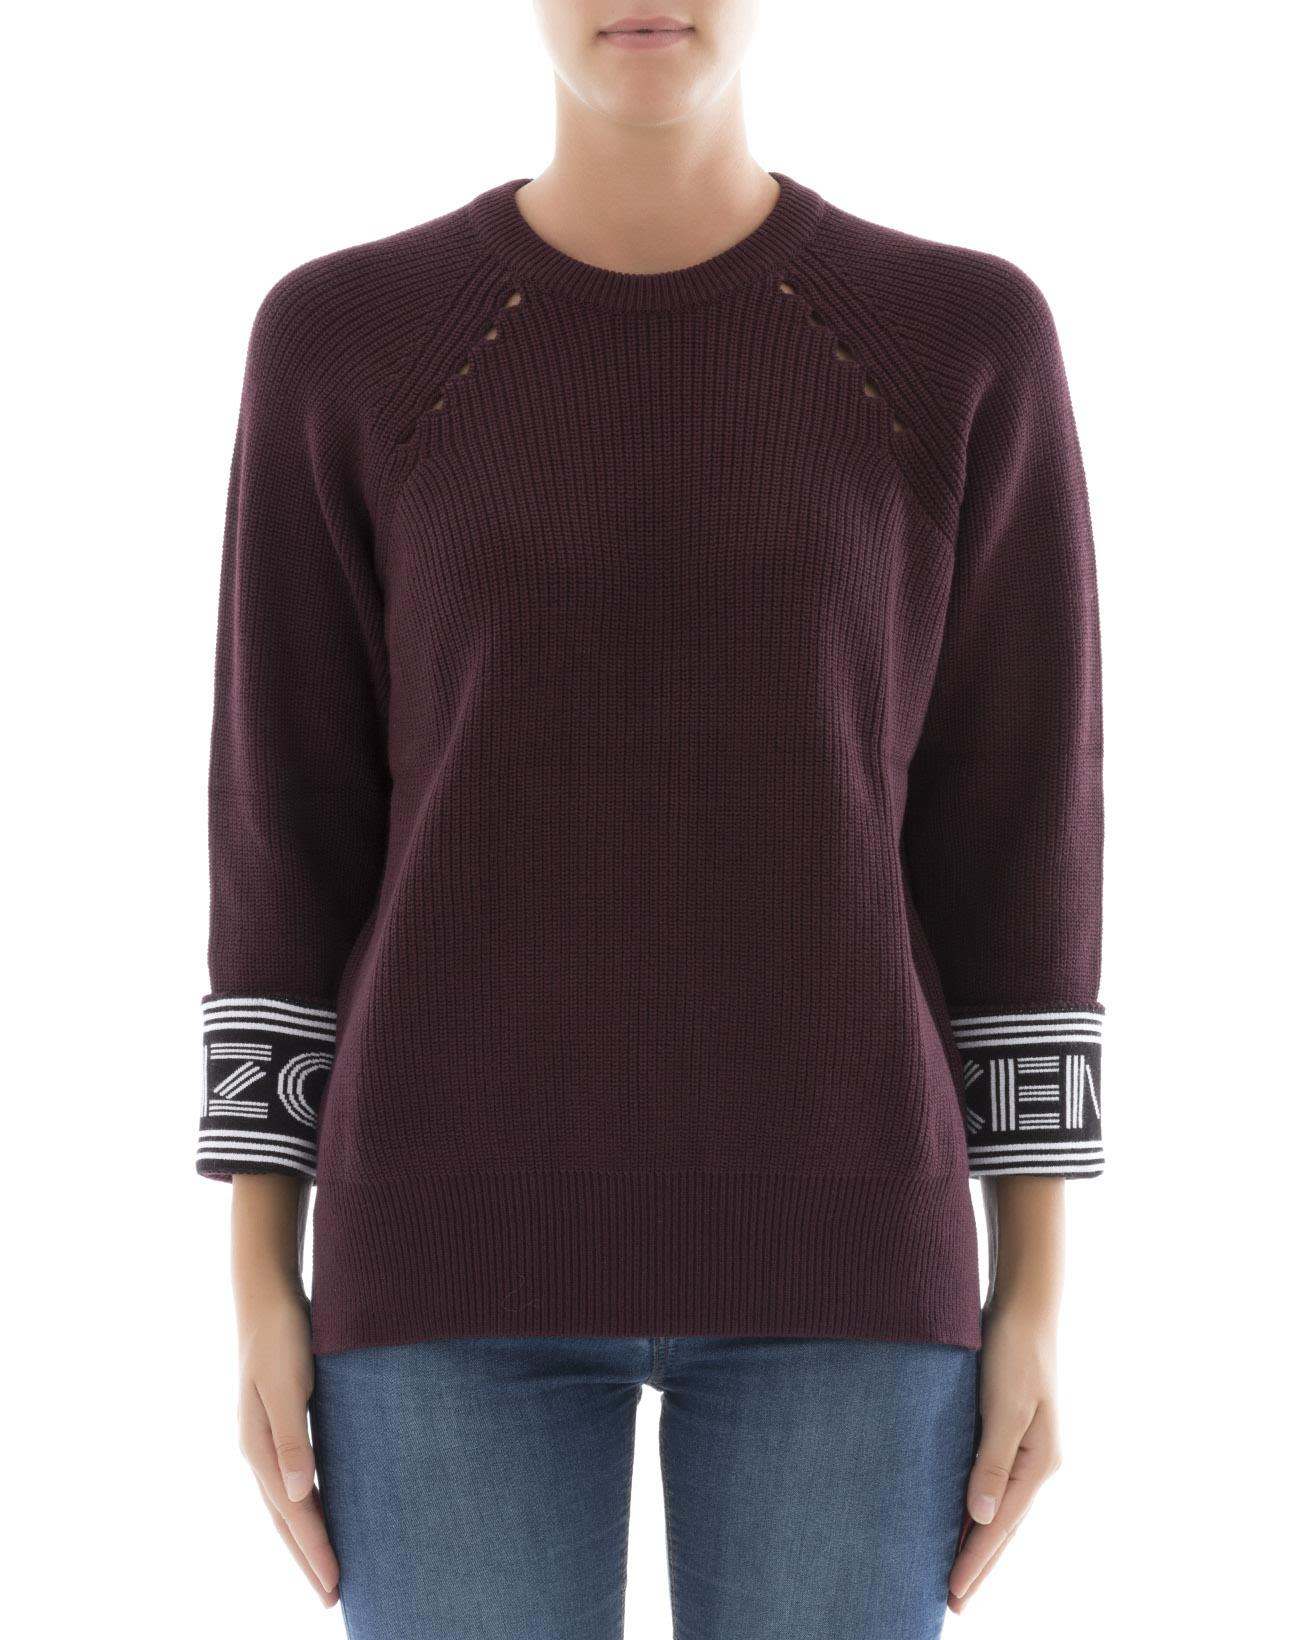 Bordeaux Cotton Sweatshirt